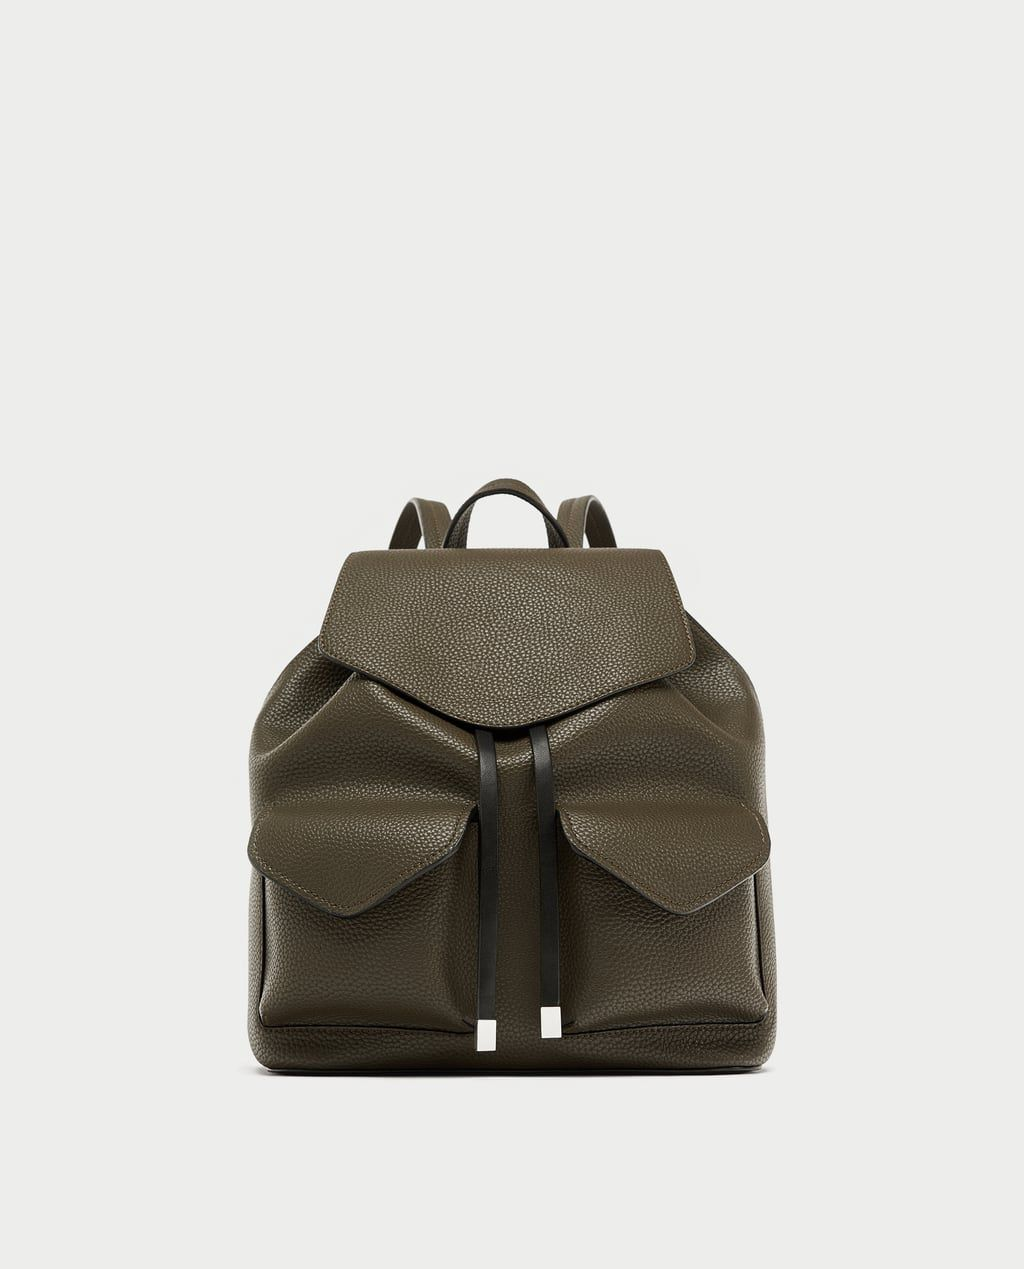 An olive faux leather backpack with pockets